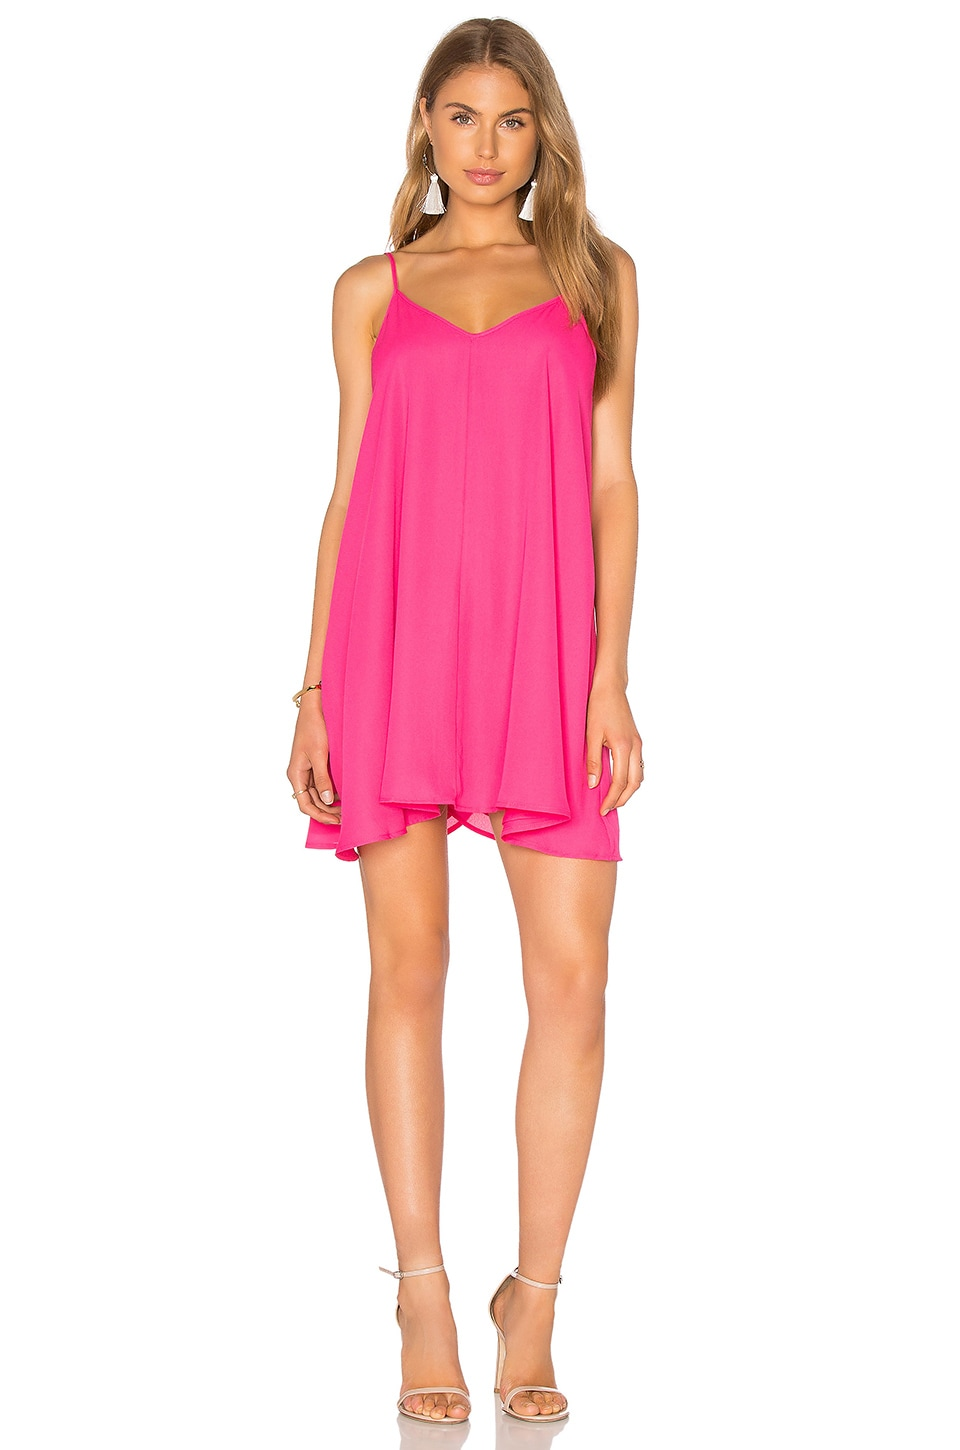 Lucca Couture Tank Dress in Fuchsia